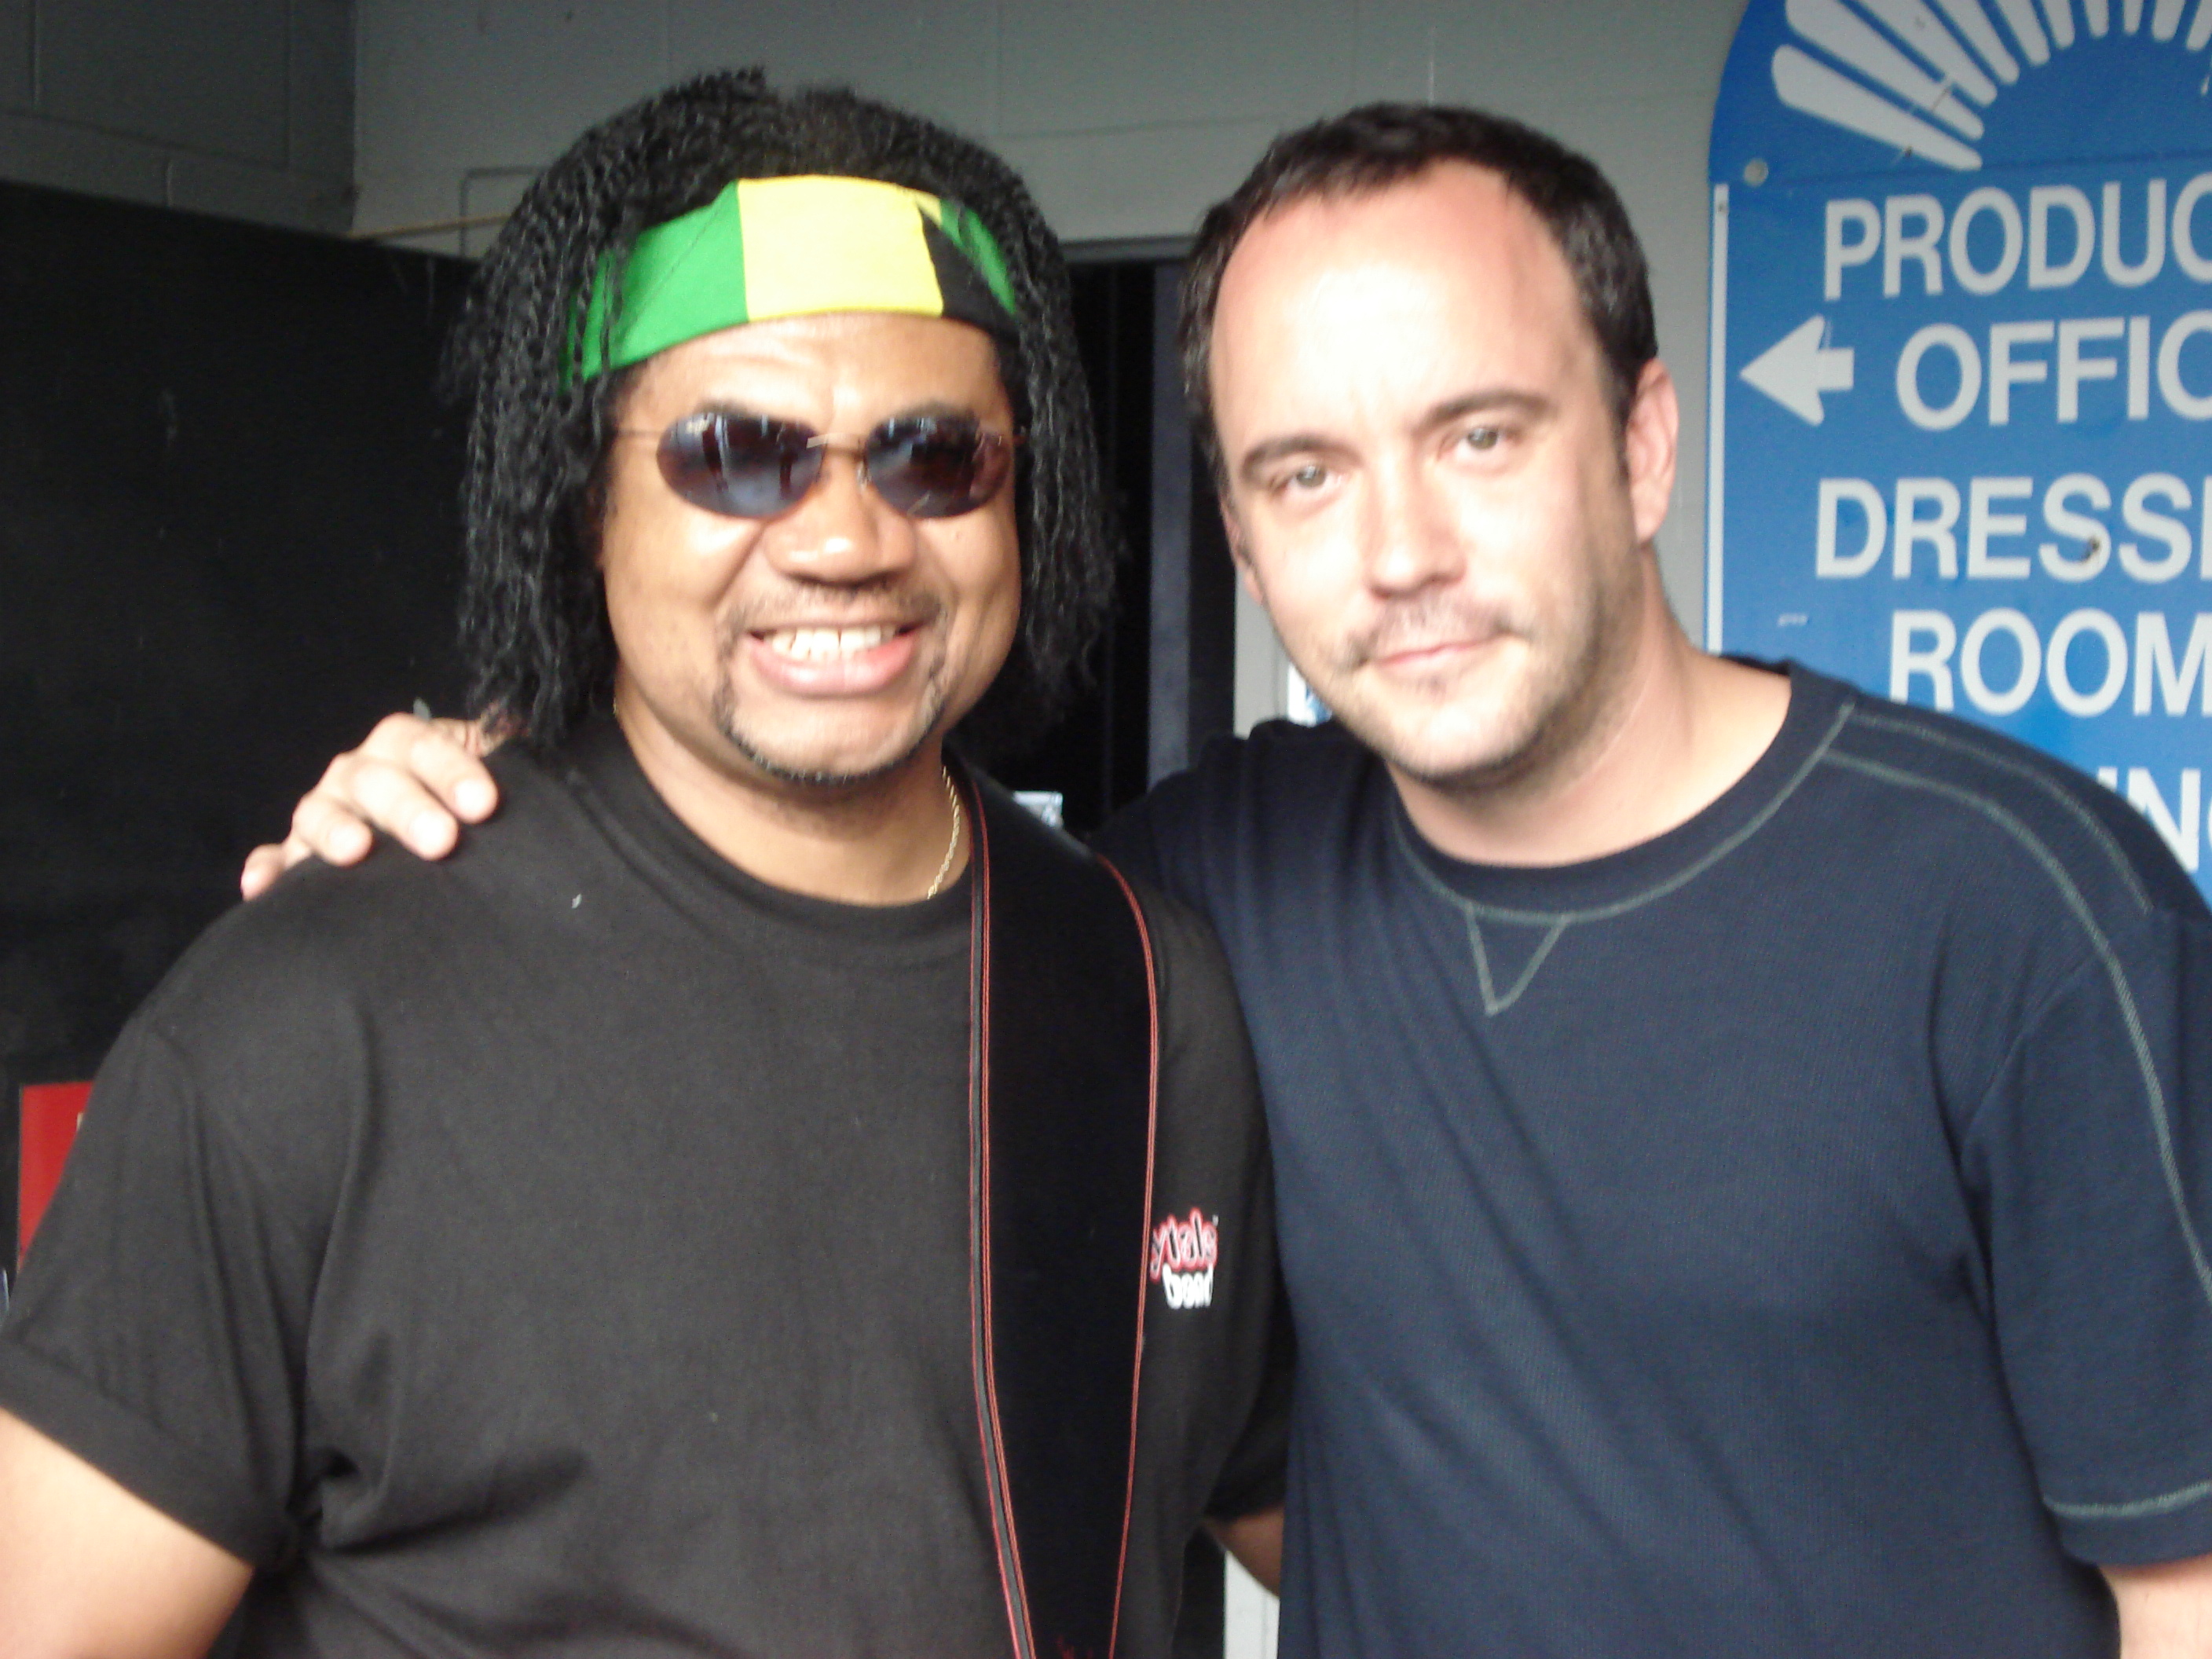 Carl Harvey with Dave Matthews